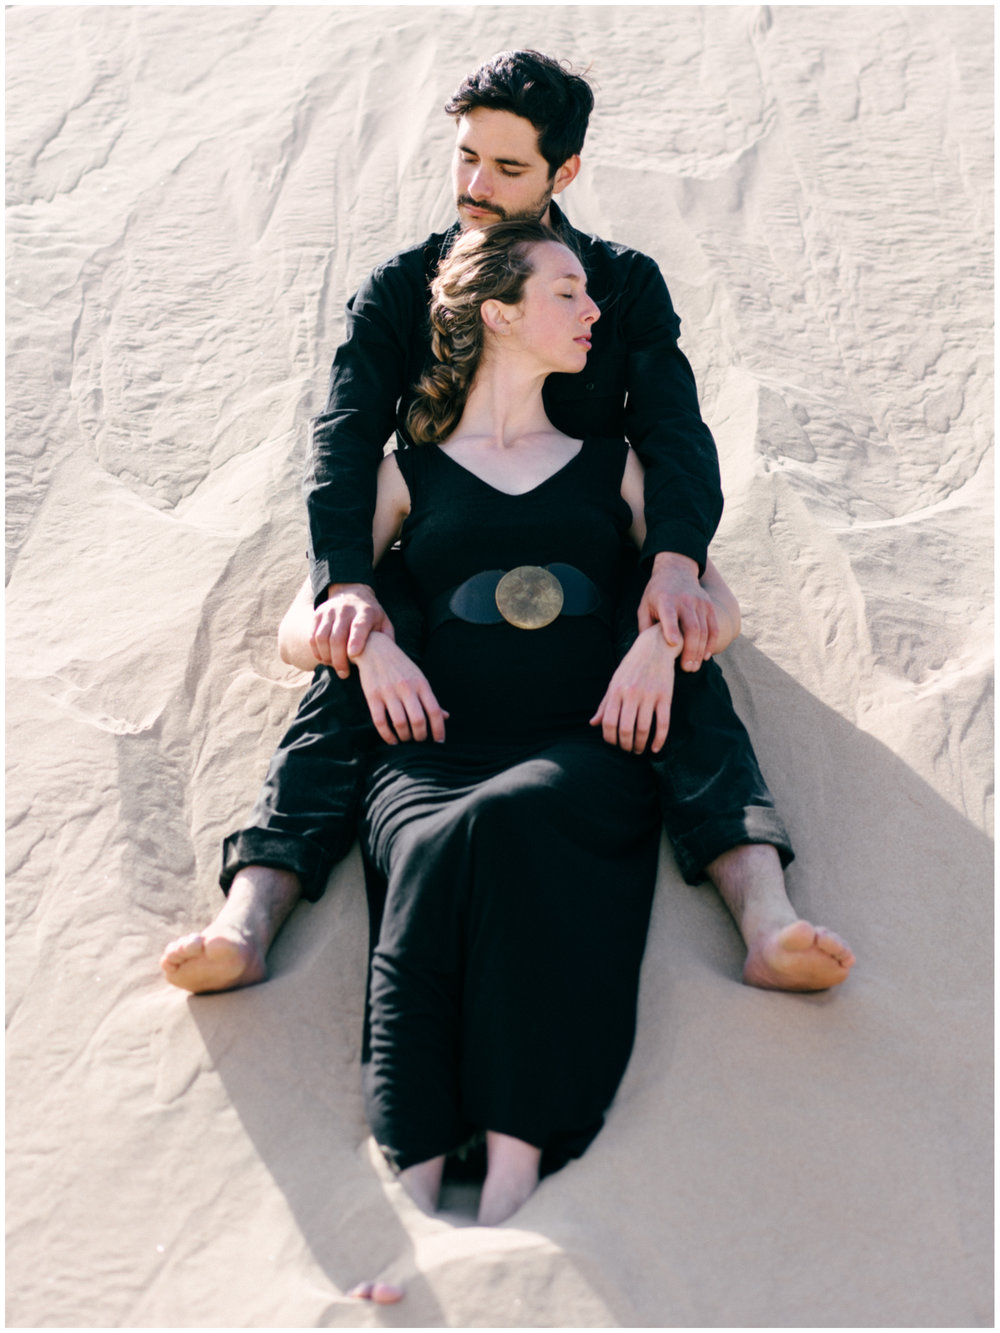 Los_Angeles_Engagement_Session_Wedding_Photographer_Pinnel_Photography-029.jpg